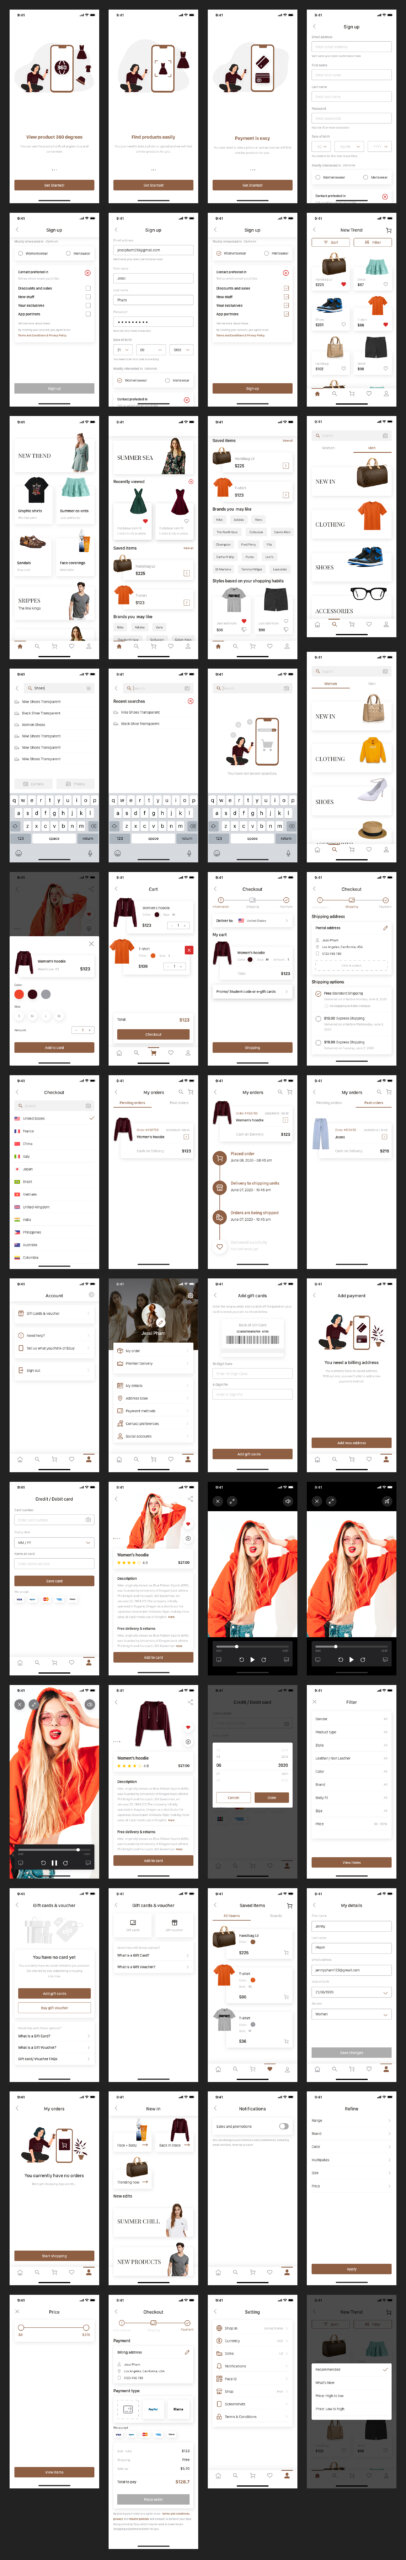 Ebuy Free eCommerce UI Kit for Sketch from UIGarage